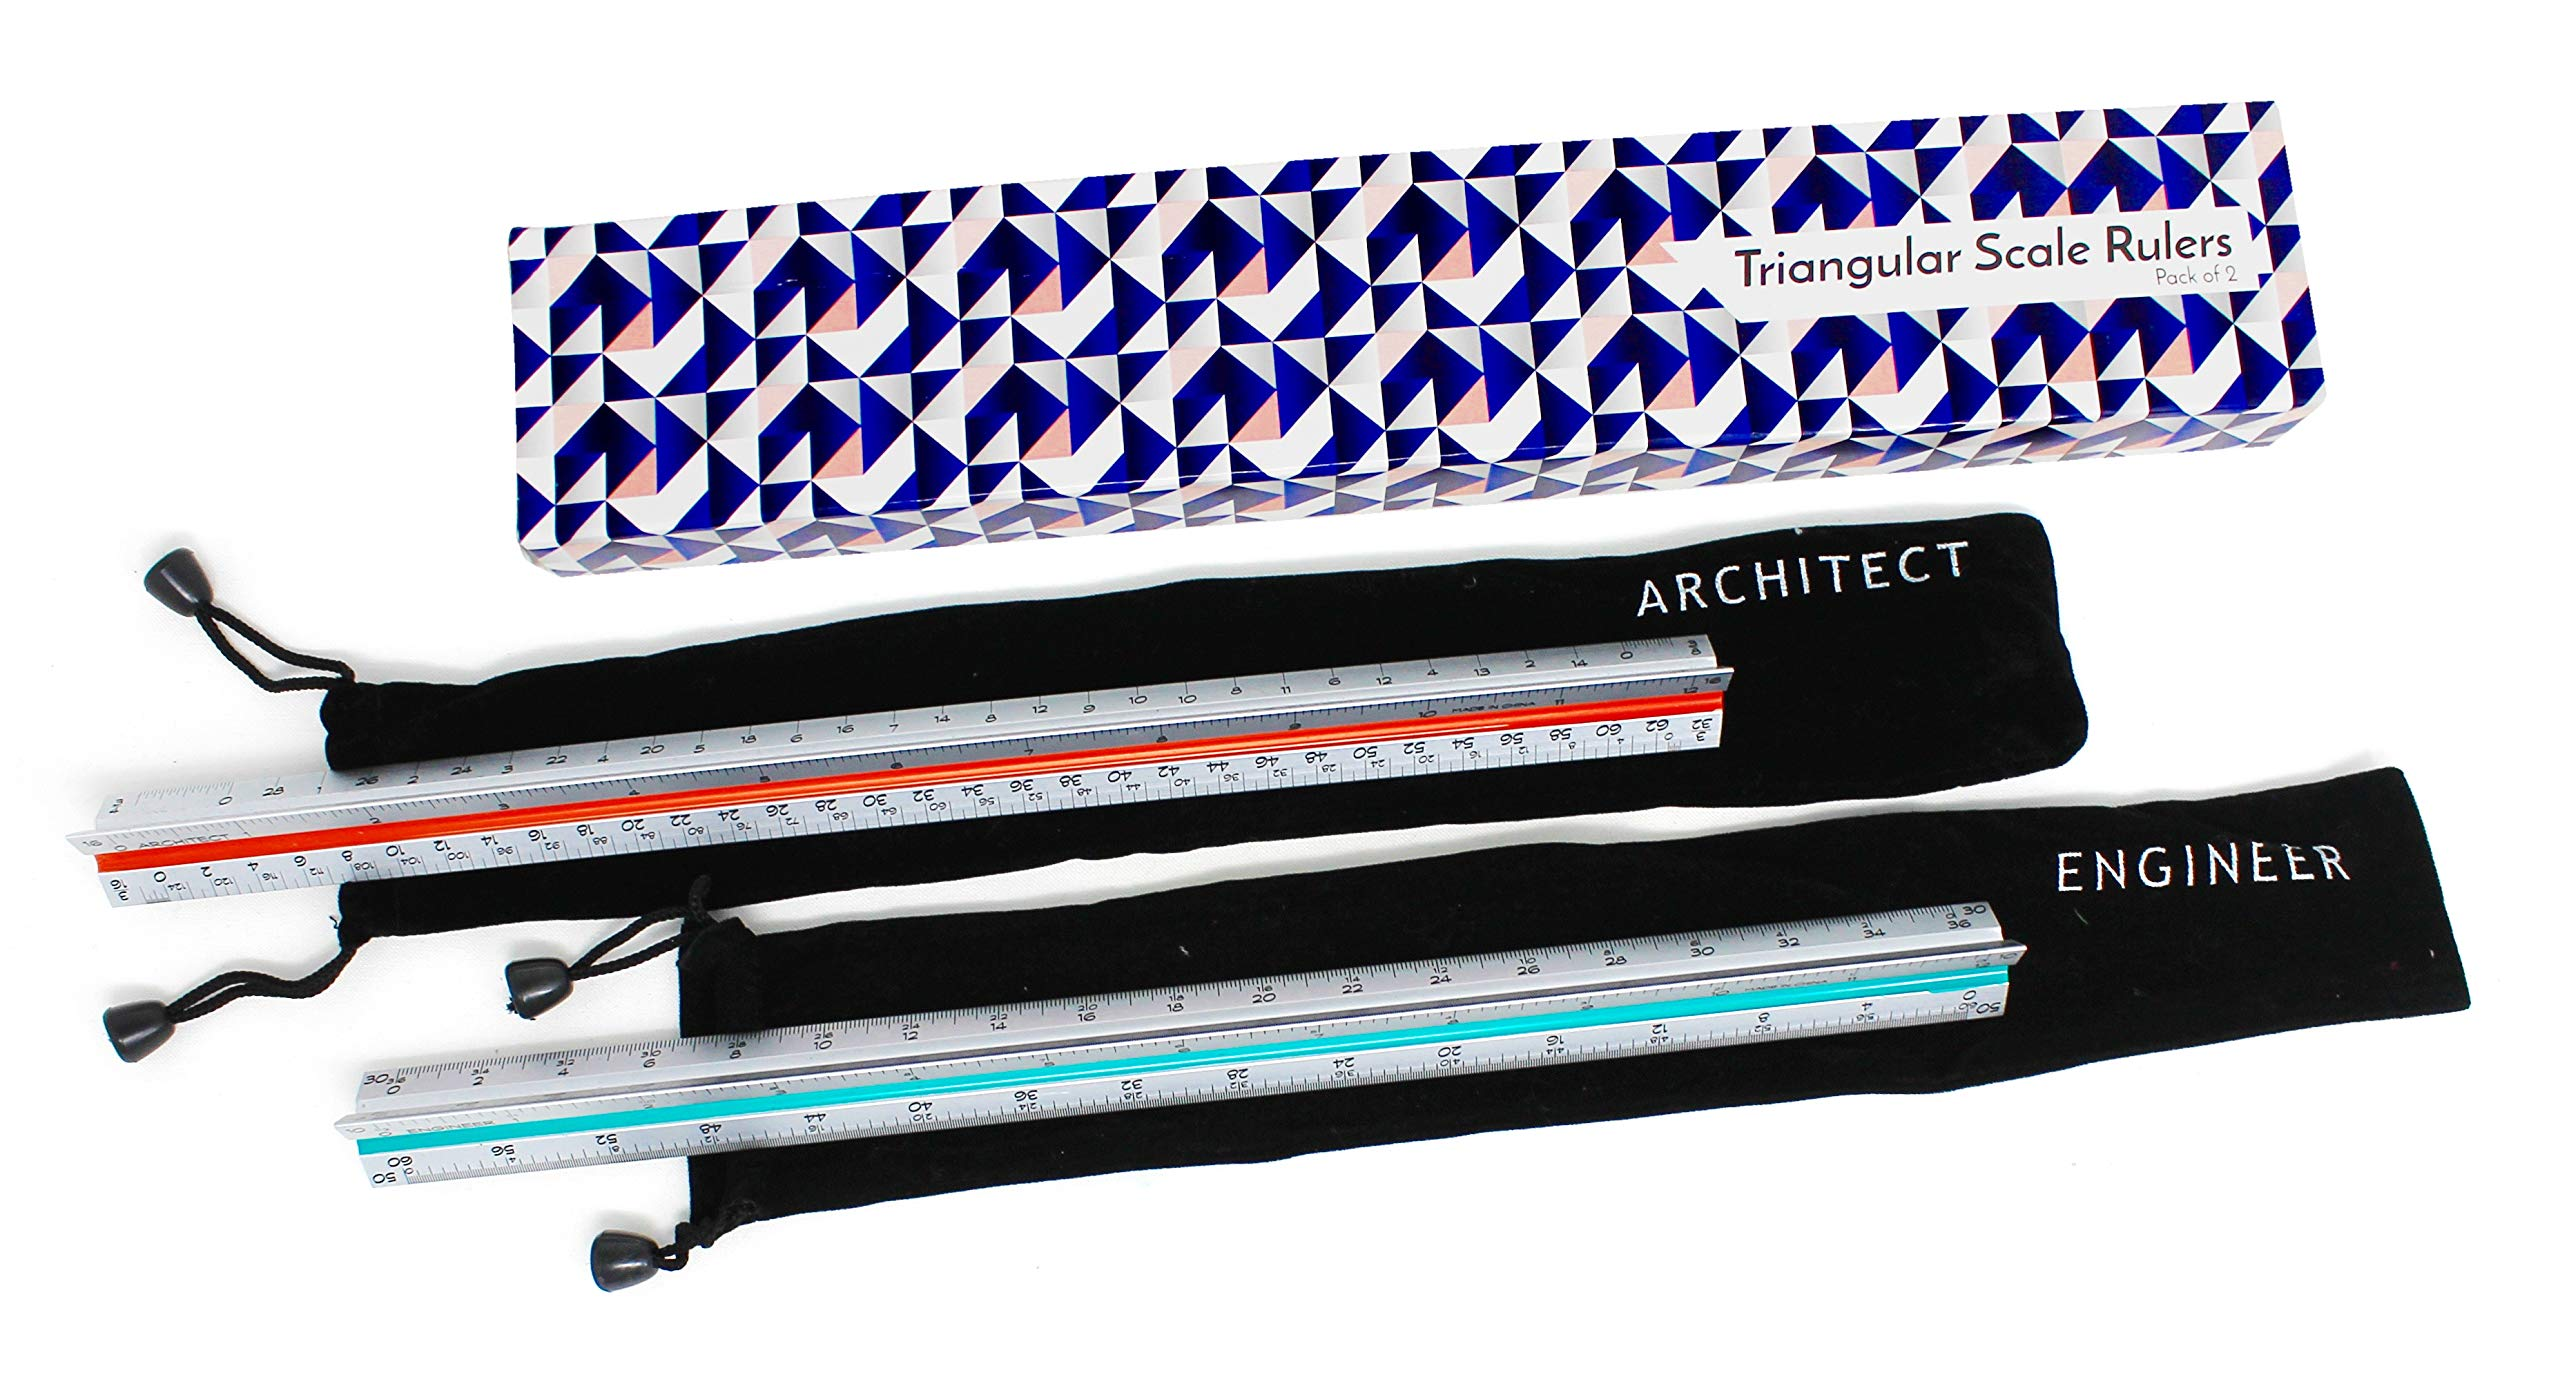 Architectural Scale Ruler for Blueprints and Engineering   Set of Two Aluminum Triangular Rulers - 1 Architect Imperial and 1 Engineer Scaled   Includes Protective Sleeves - 2 Pack by Noe & Malu (Image #1)